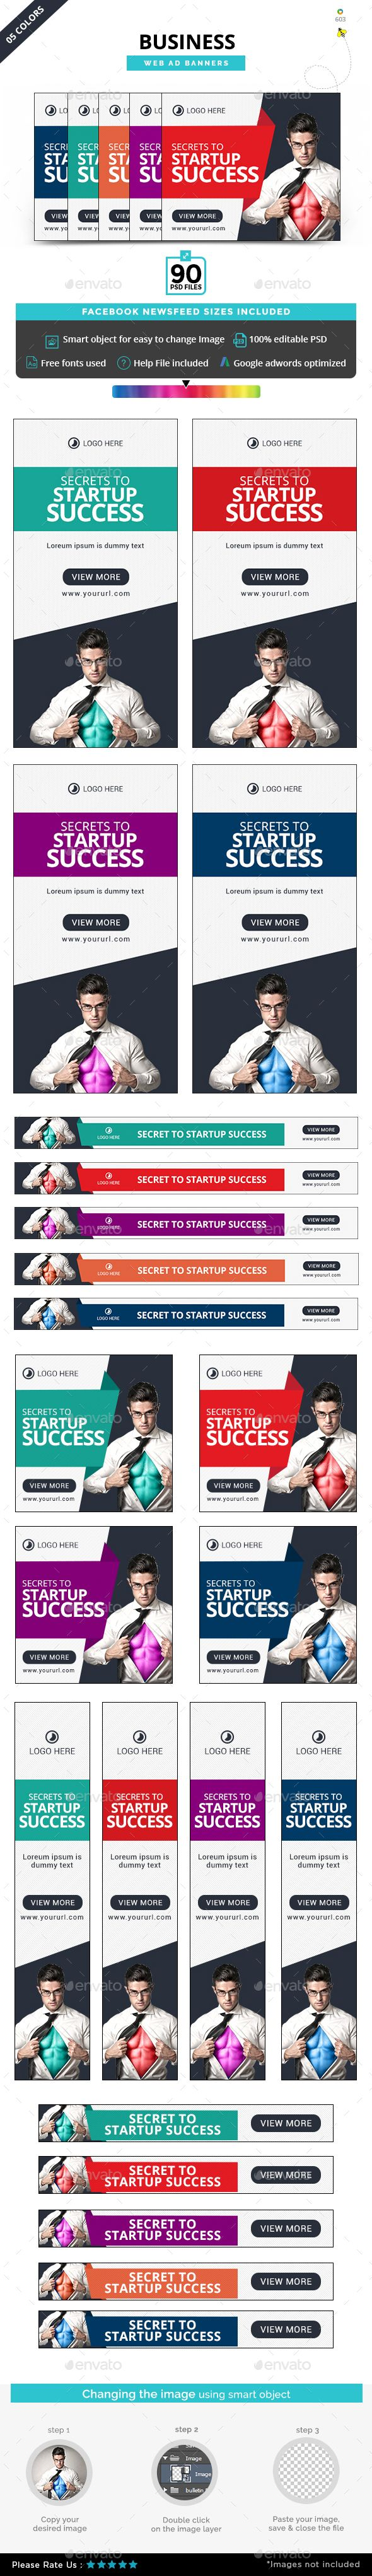 business banners banners banner template and web banners